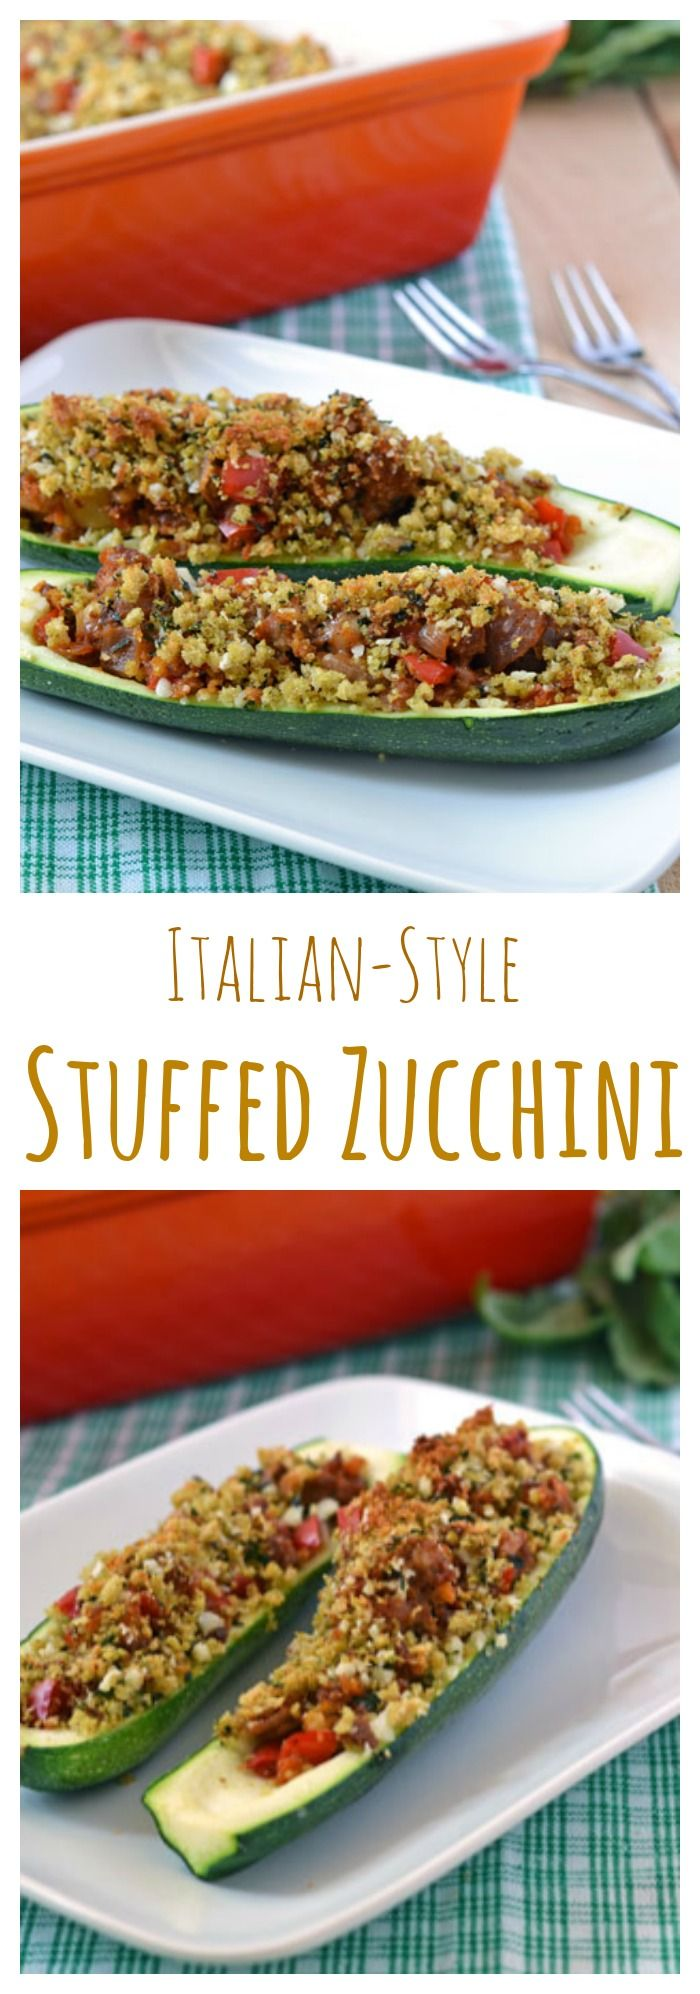 Italian stuffed zucchini boats. A light and healthy summer dinner! Filled with turkey sausage, tomatoes, and topped with crunchy bread crumbs, this is sure to be a family favorite!